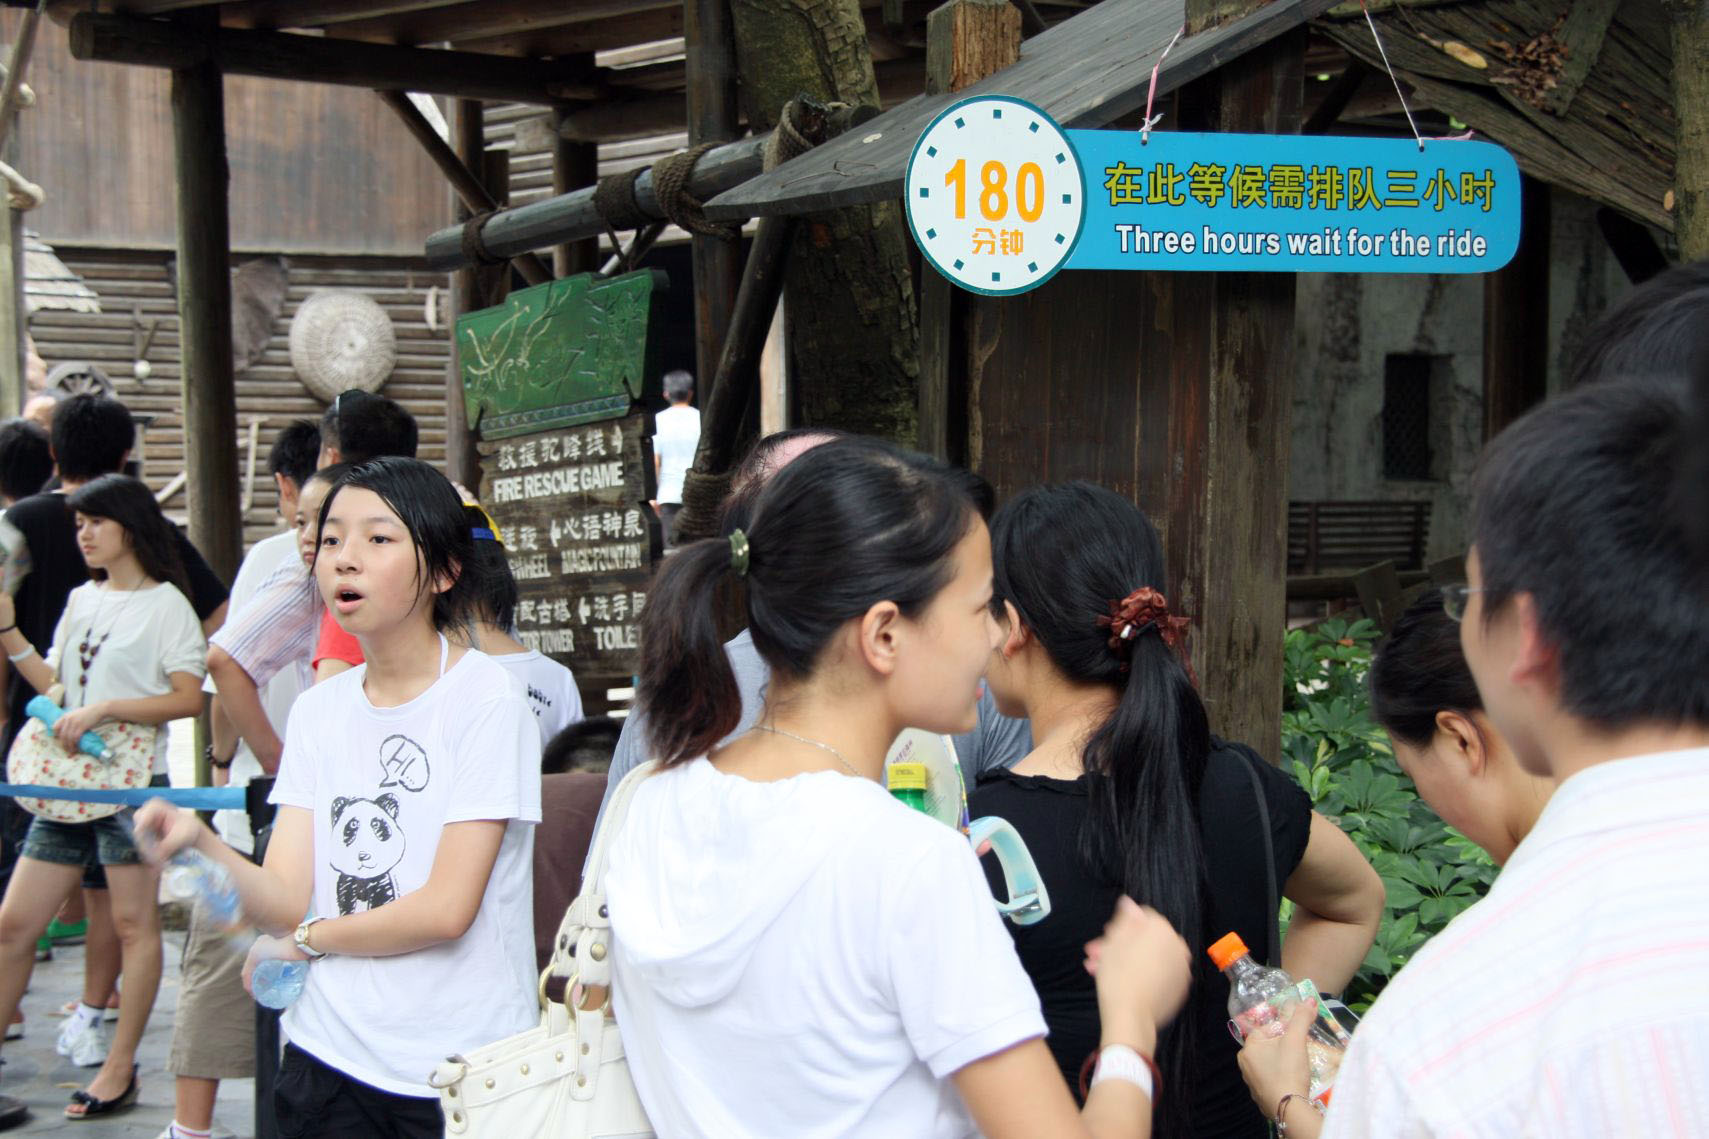 HappyValley_RollerCoaster_QueueUp.jpg - Shenzhen: Happy valley is a fun park... Queue up for more then three hours for a ride..